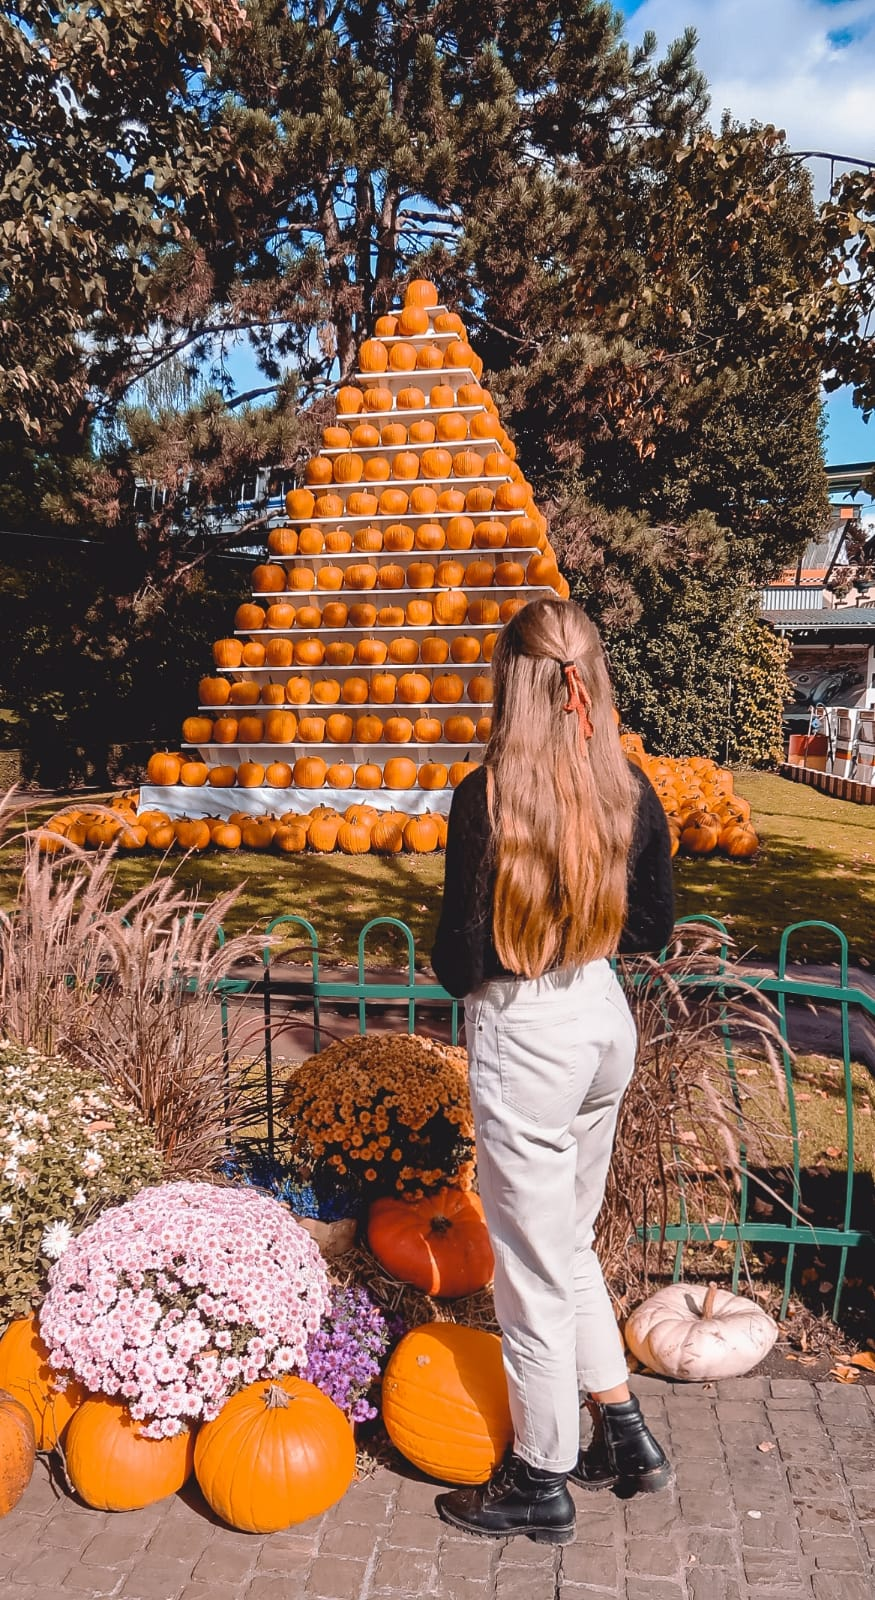 Top 10 Fall Picture Ideas for Students | Fall Photography Ideas for College Students | myclickjournal